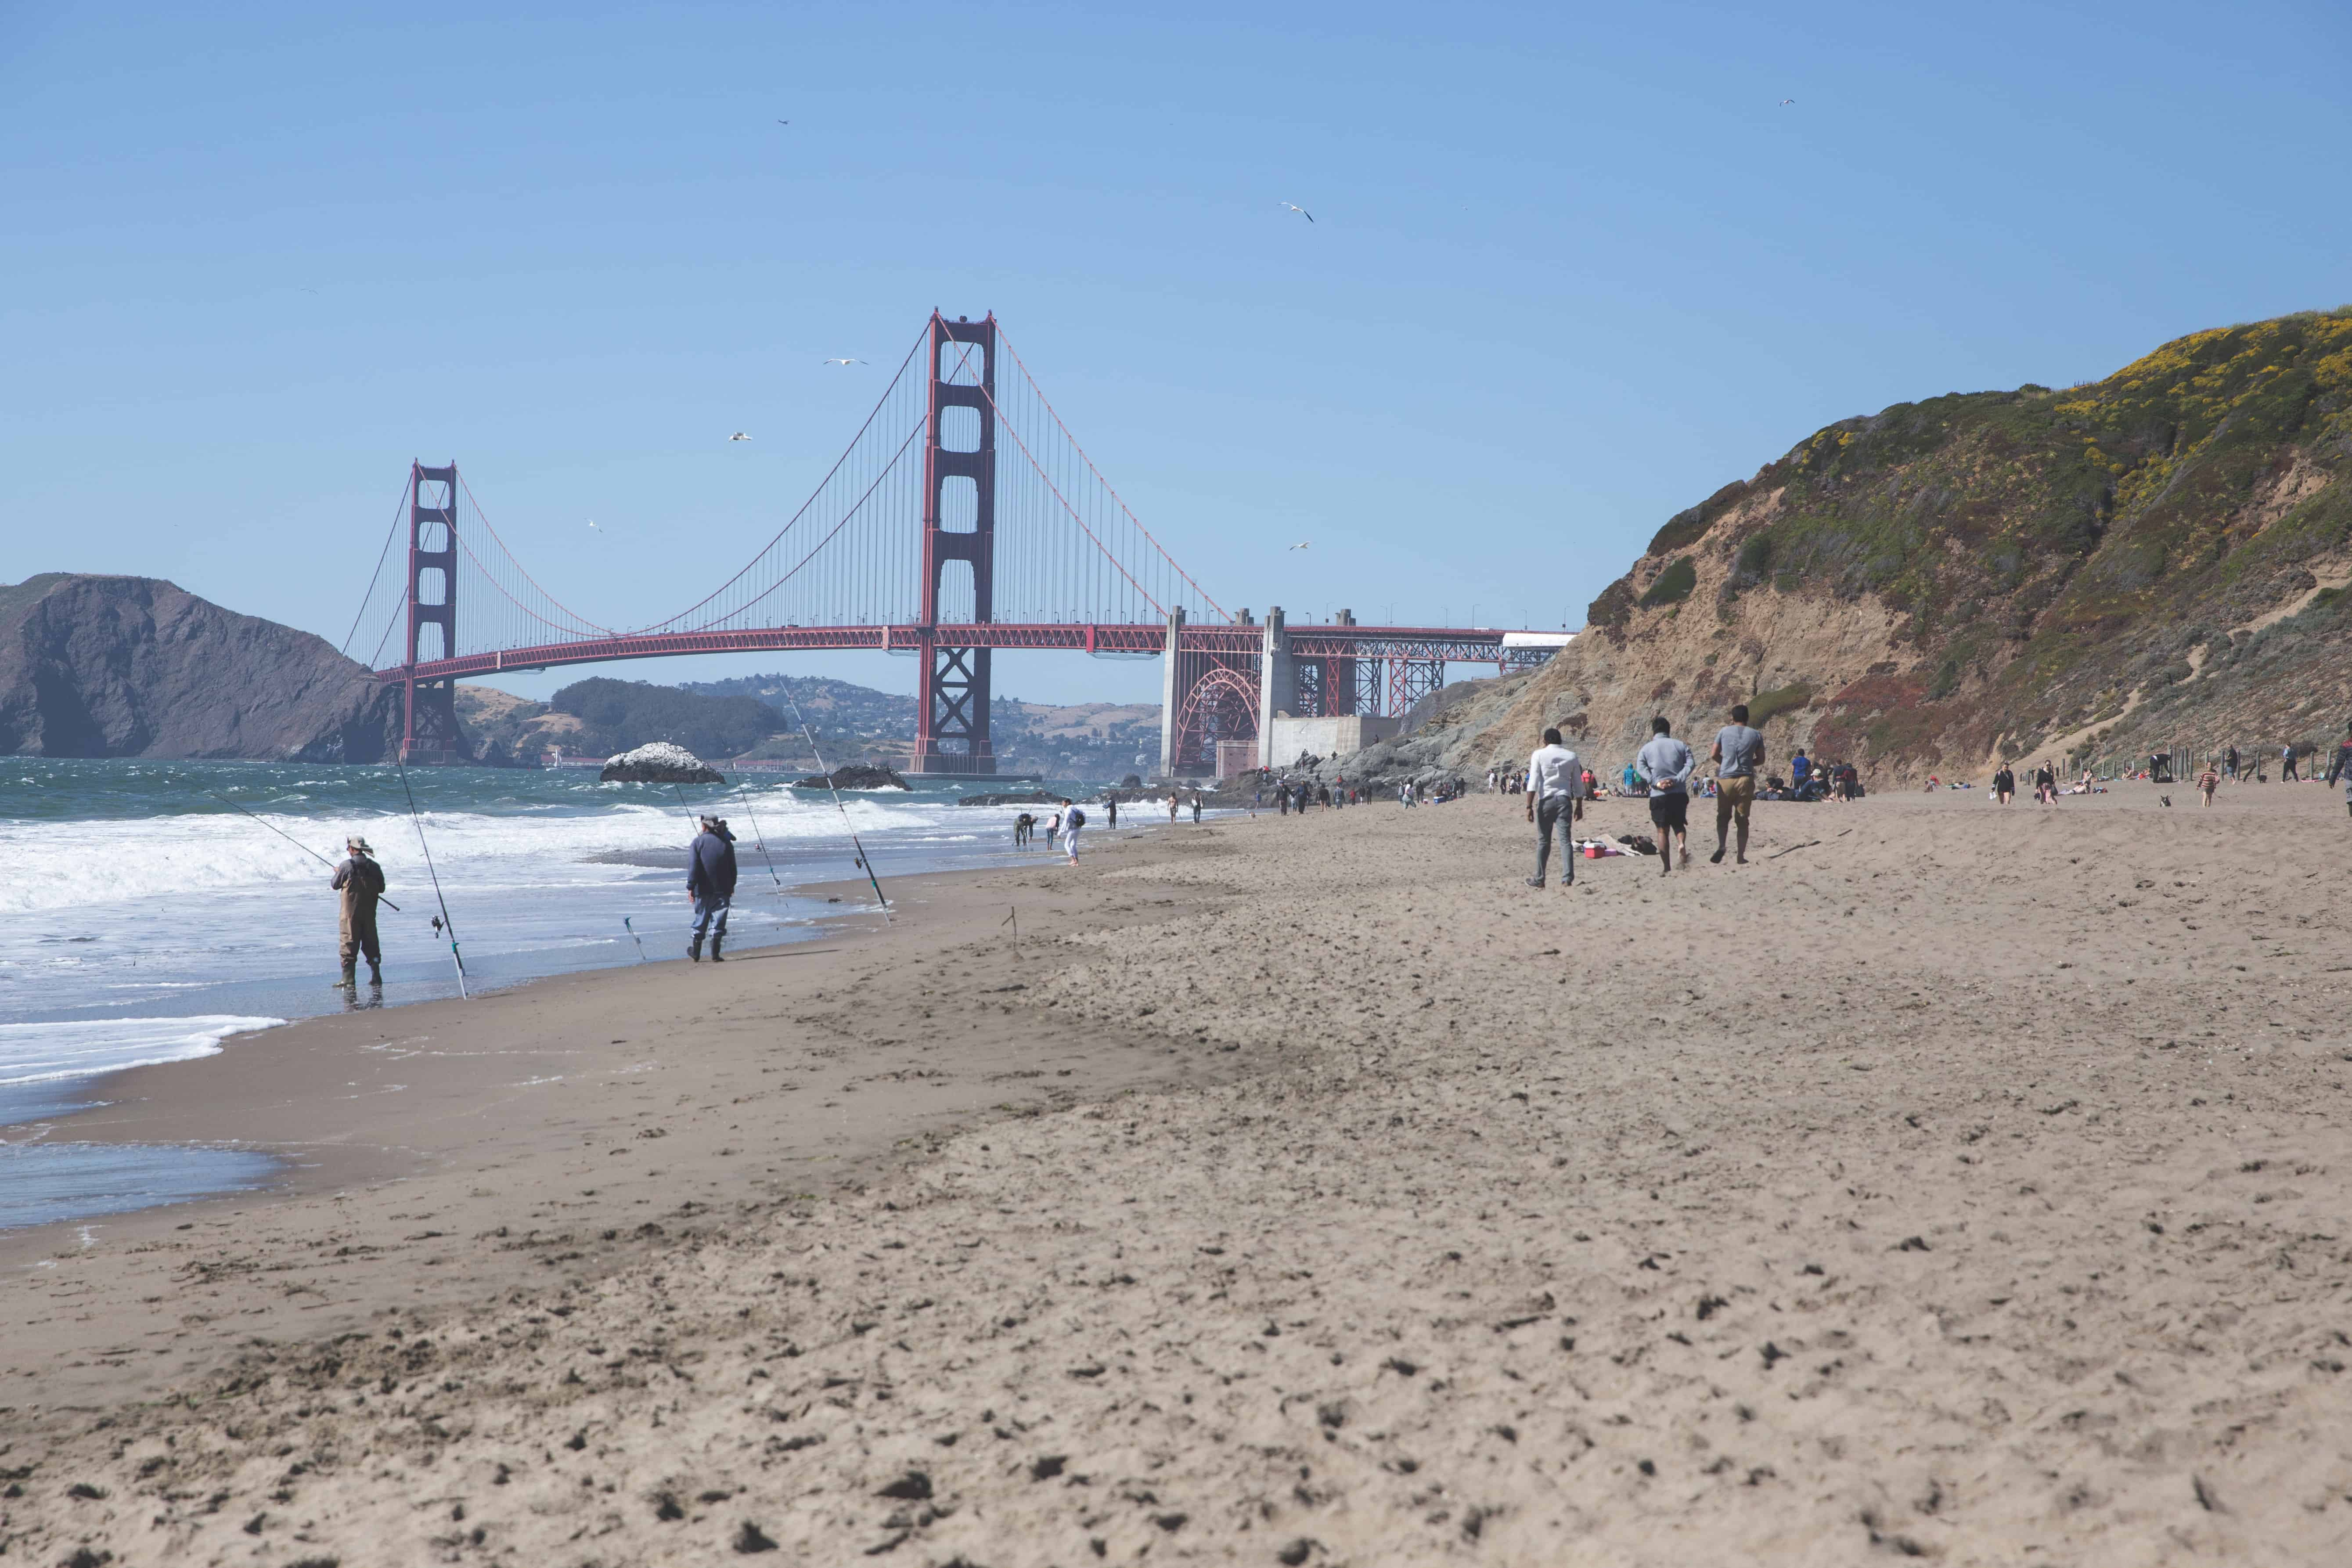 The Golden Gate Bridge at Baker Beach in the Bay Area in San Francisco, California